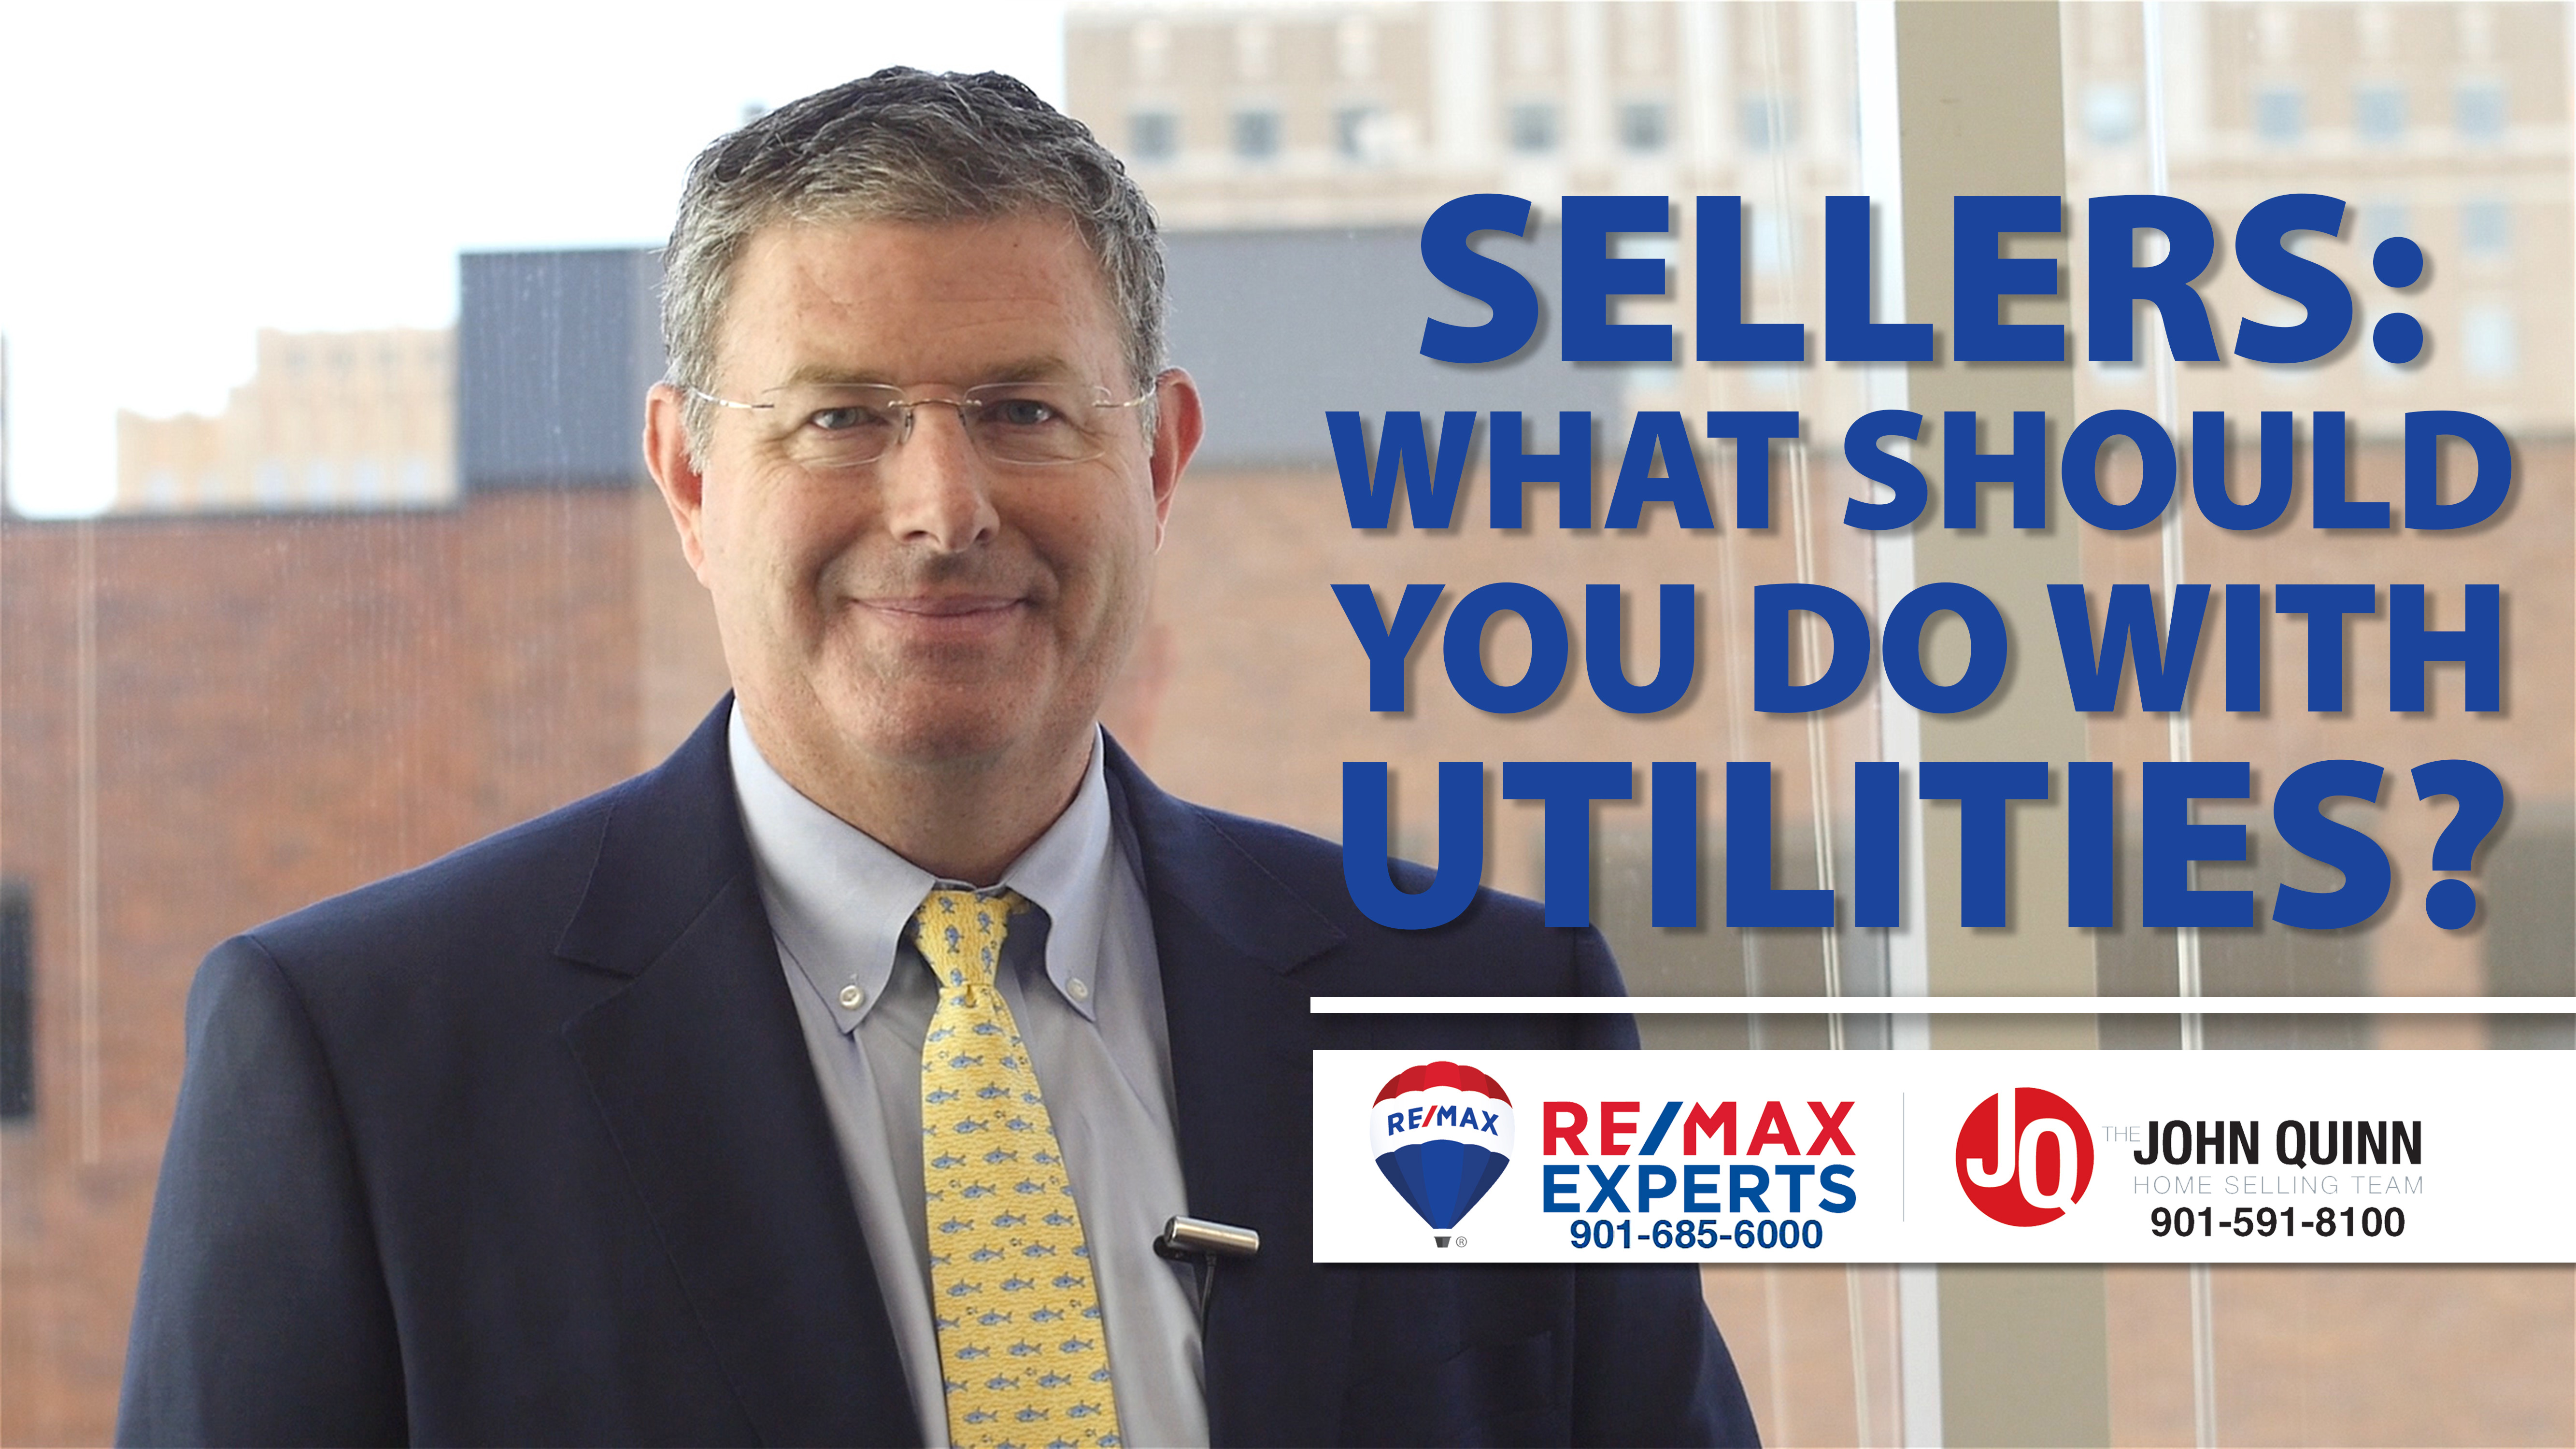 How to Handle Utilities in a Home Sale